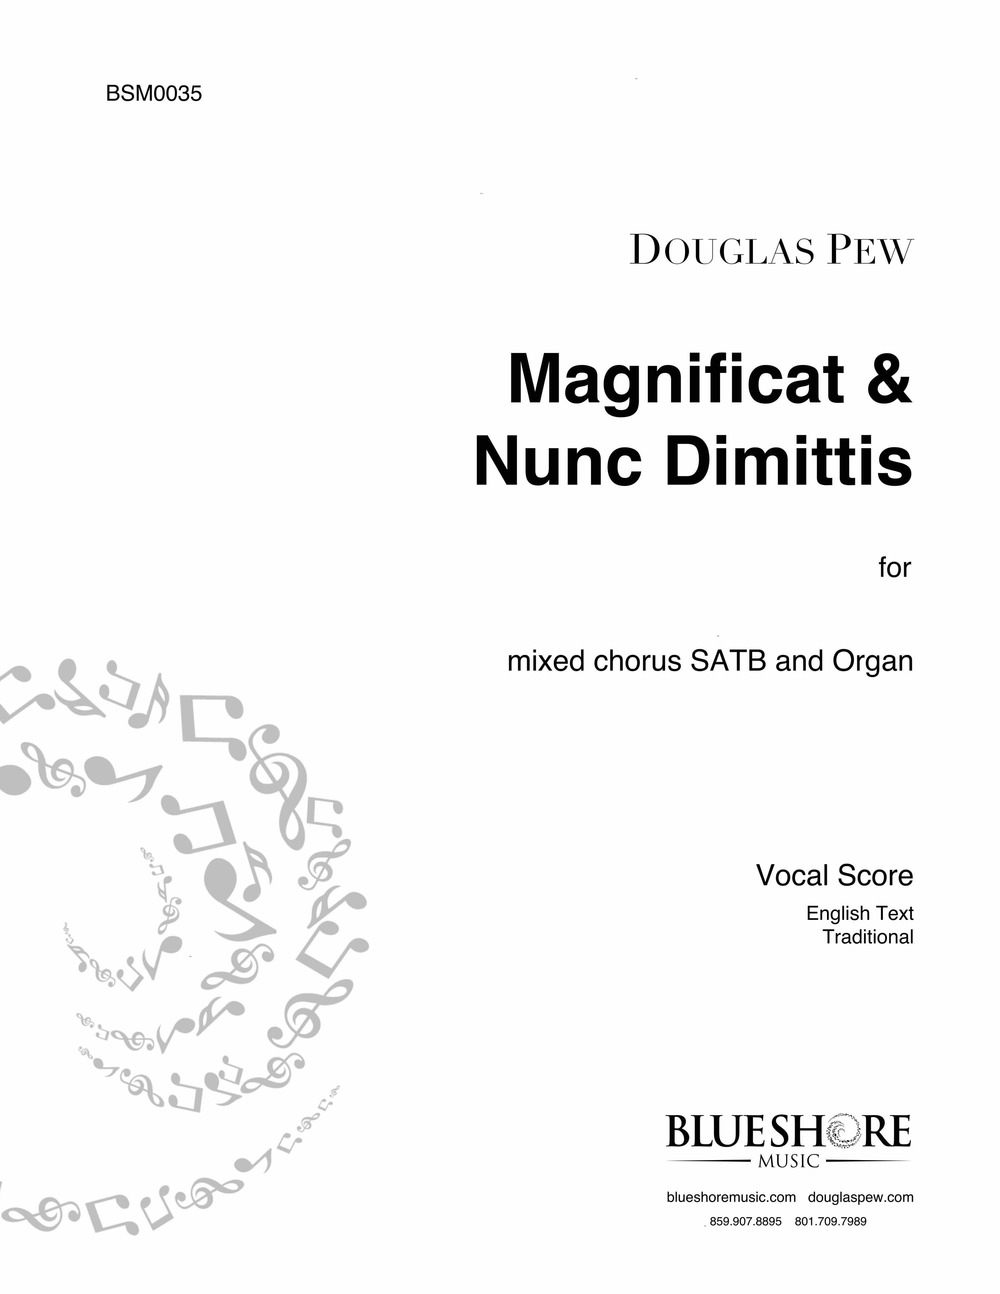 Magnificat and Nunc Dimittis (St. Thomas Service) - for SATB and Organ